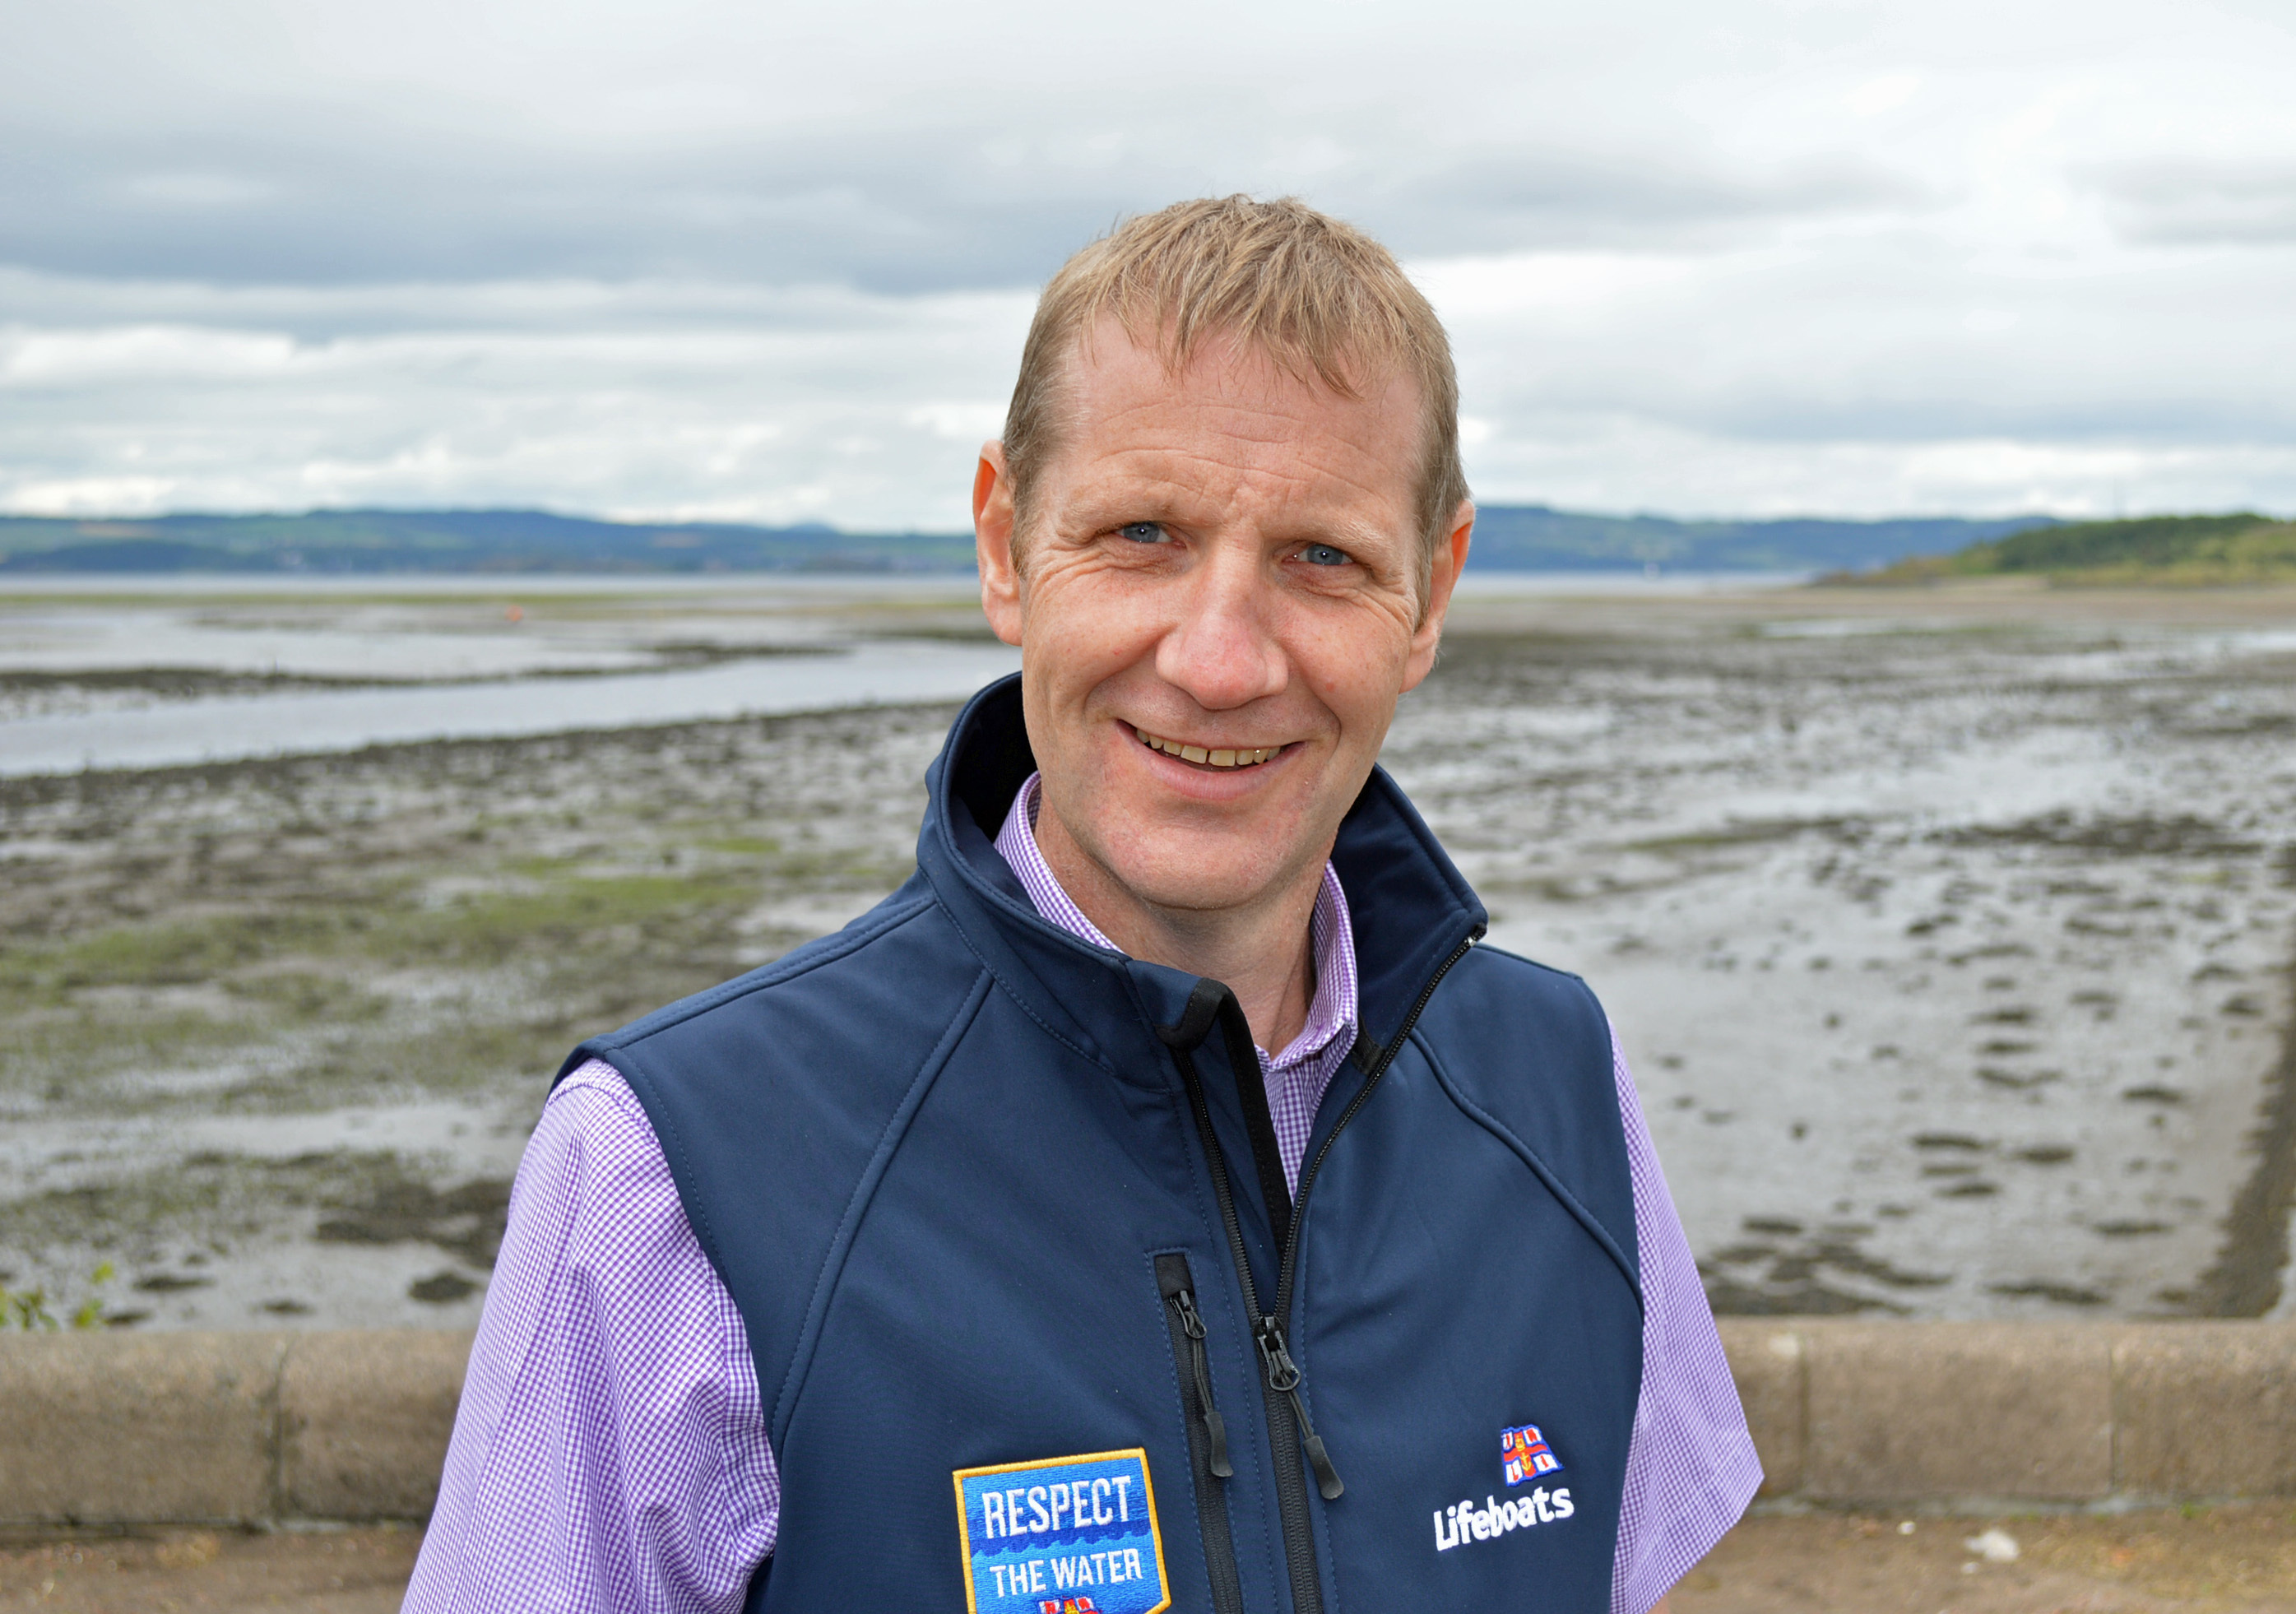 Michael Avril, of RNLI, issued a safety warning.